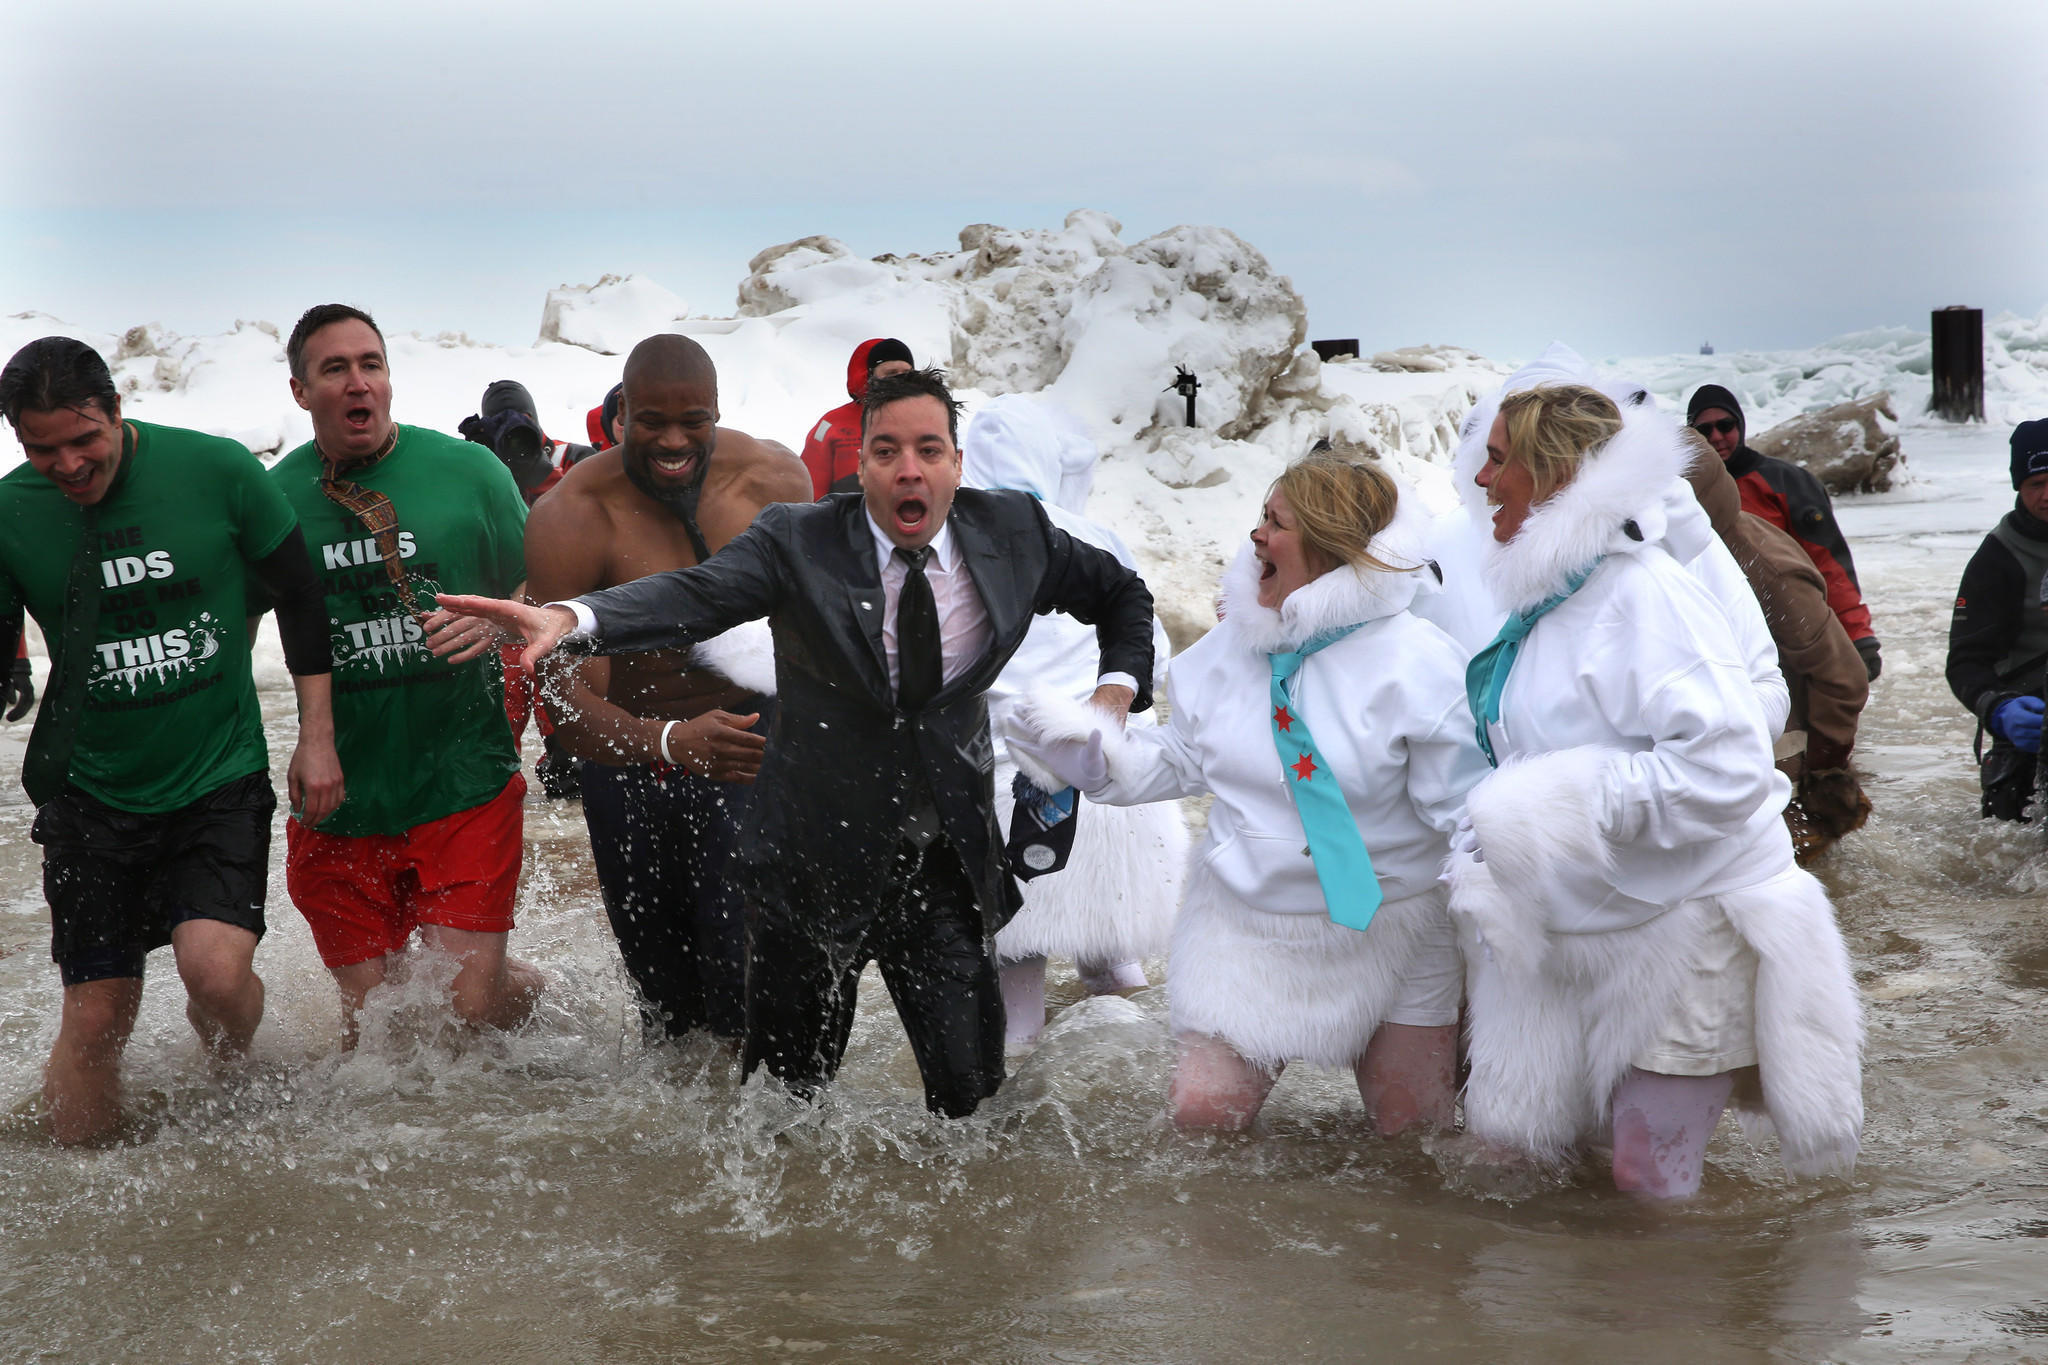 Suit-and-tie-clad Jimmy Fallon emerges from the water followed by former Bear Israel Idonije on Sunday after taking the Polar Plunge.